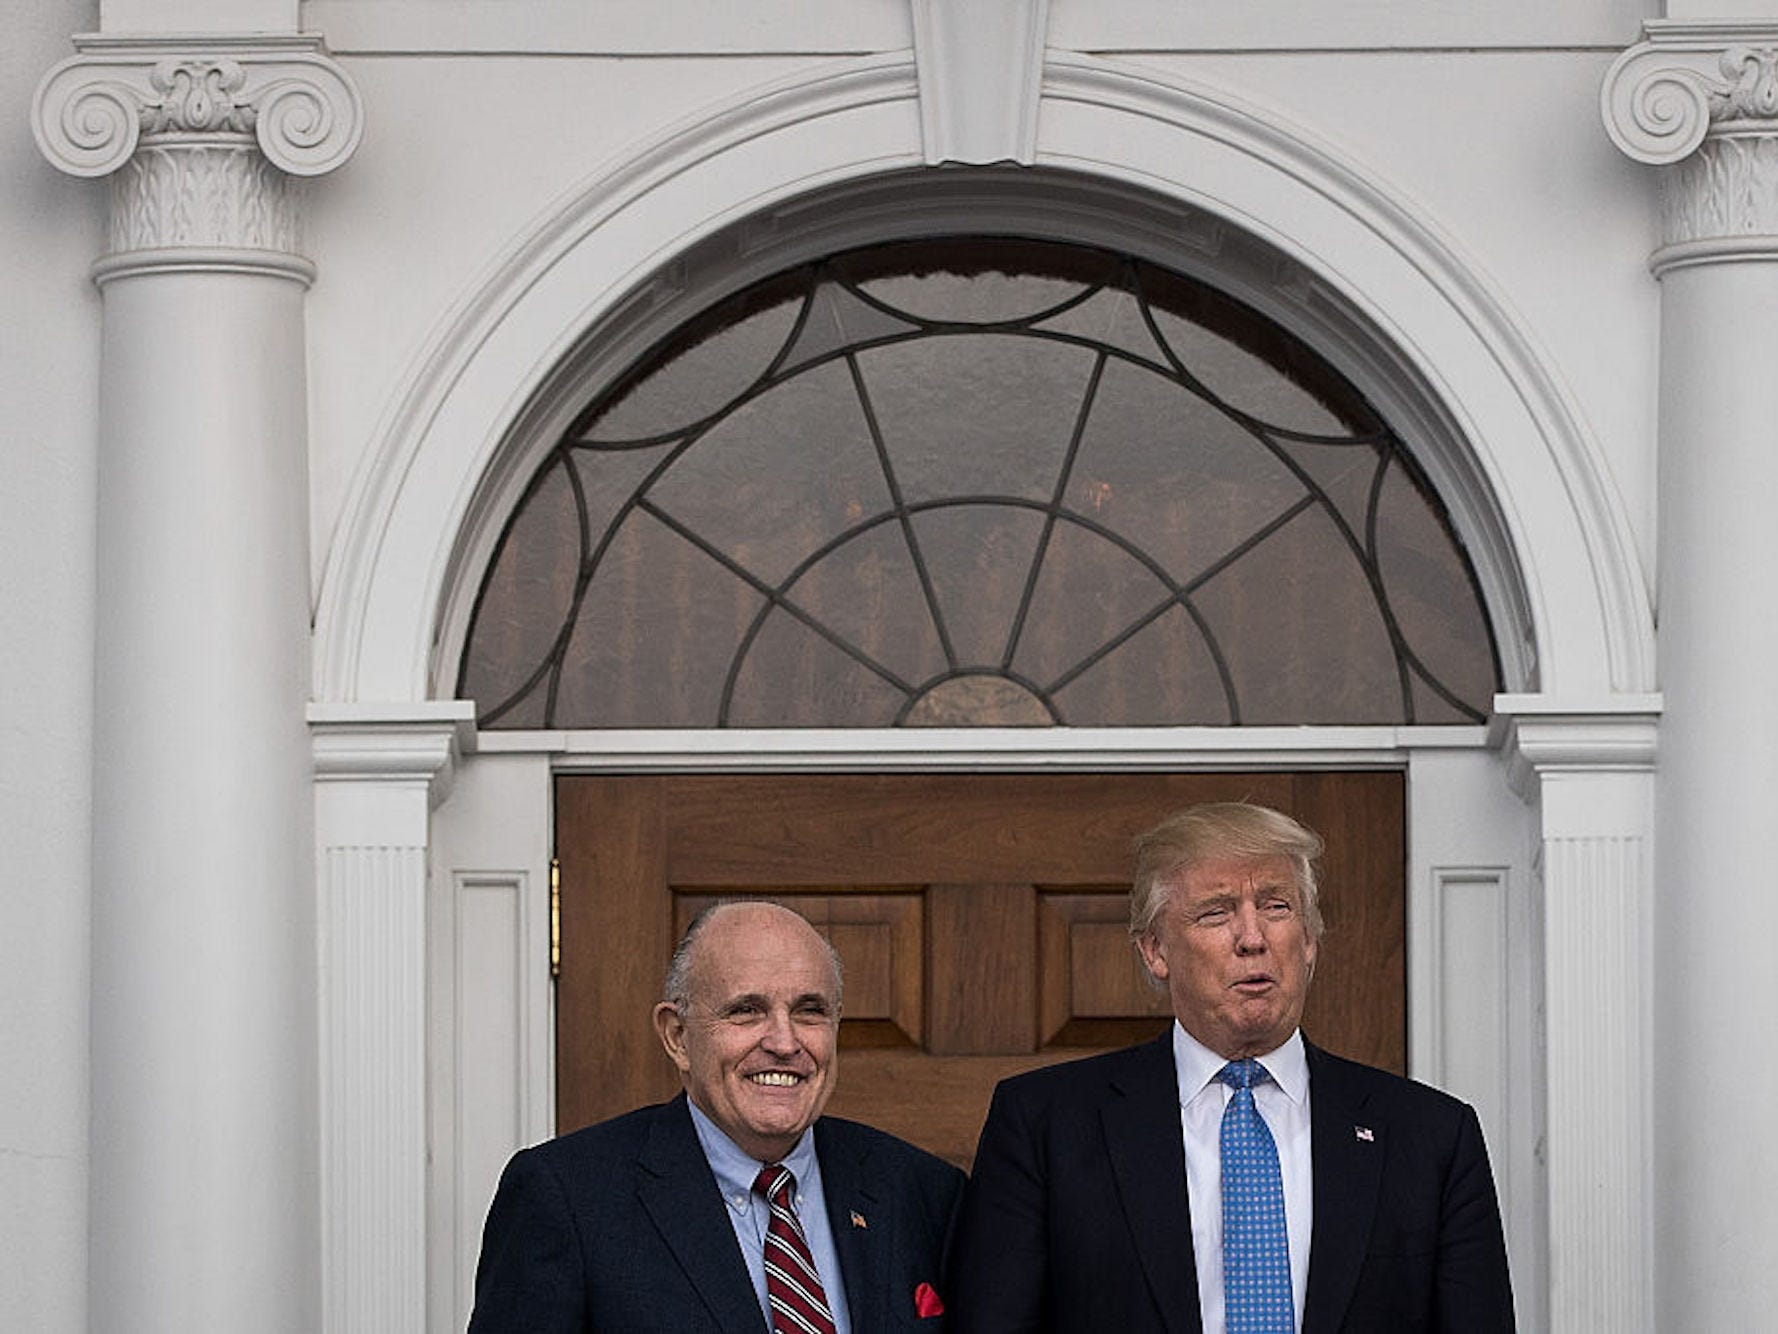 Trump shrugged and said thats Rudy when warned Giuliani was being targeted by Russian agents with disinformation, report says